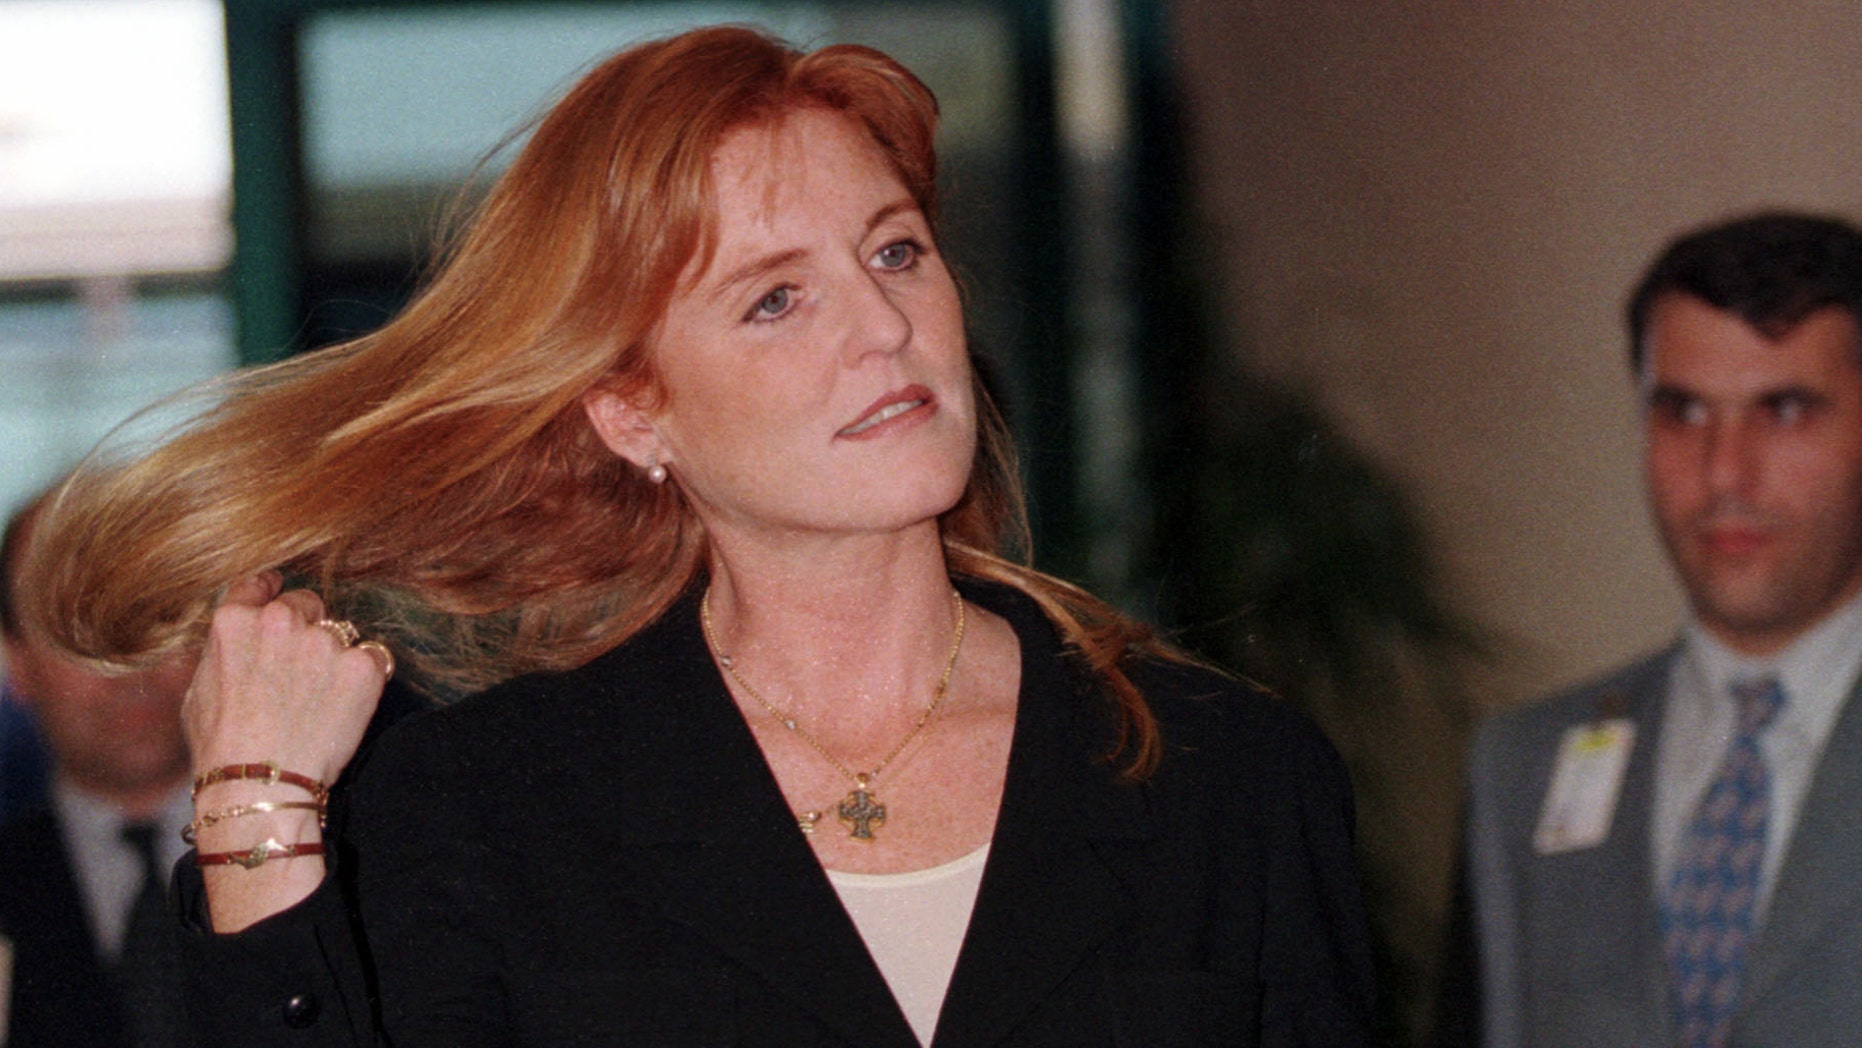 June 10, 1998: In this file photo Britain's Duchess of York, Sarah Ferguson arrives at Istanbul's Ataturk airport.